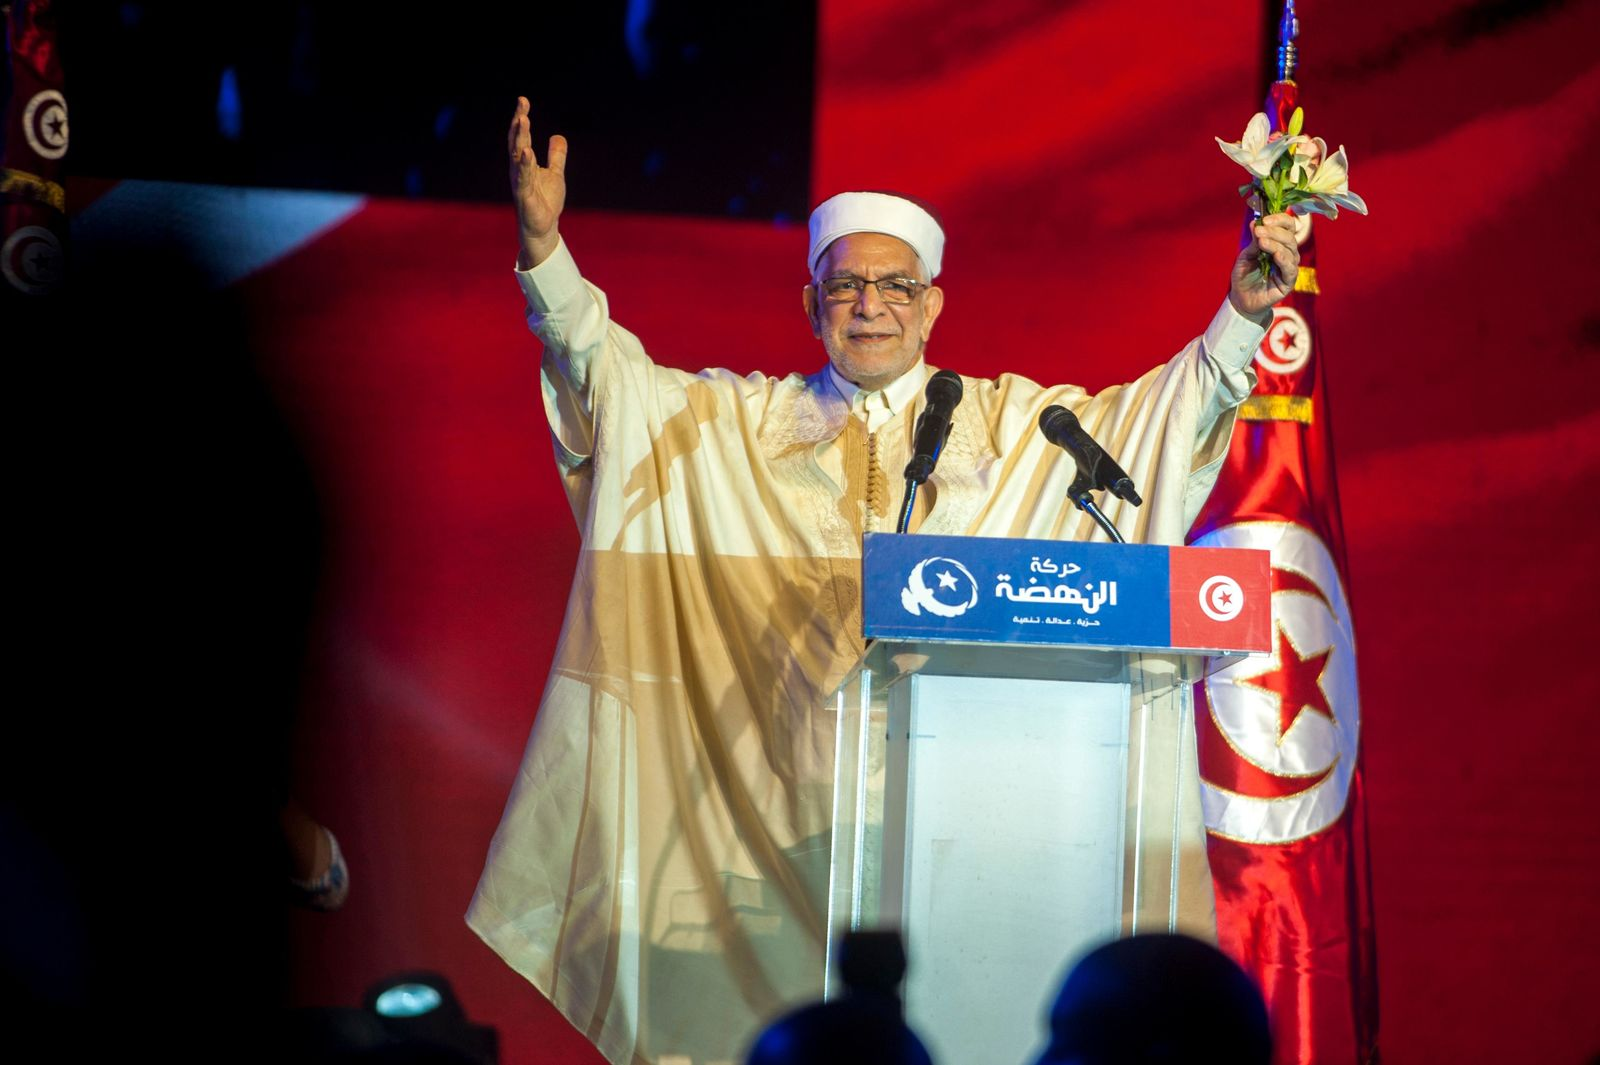 Vice President of the Islamist party Ennahda and candidate for the upcoming presidential elections Abdelfattah Mourou speaks during a meeting with the members of his party in Tunis, Tunisia, Friday, Aug. 30, 2019. (AP Photo/Hassene Dridi)